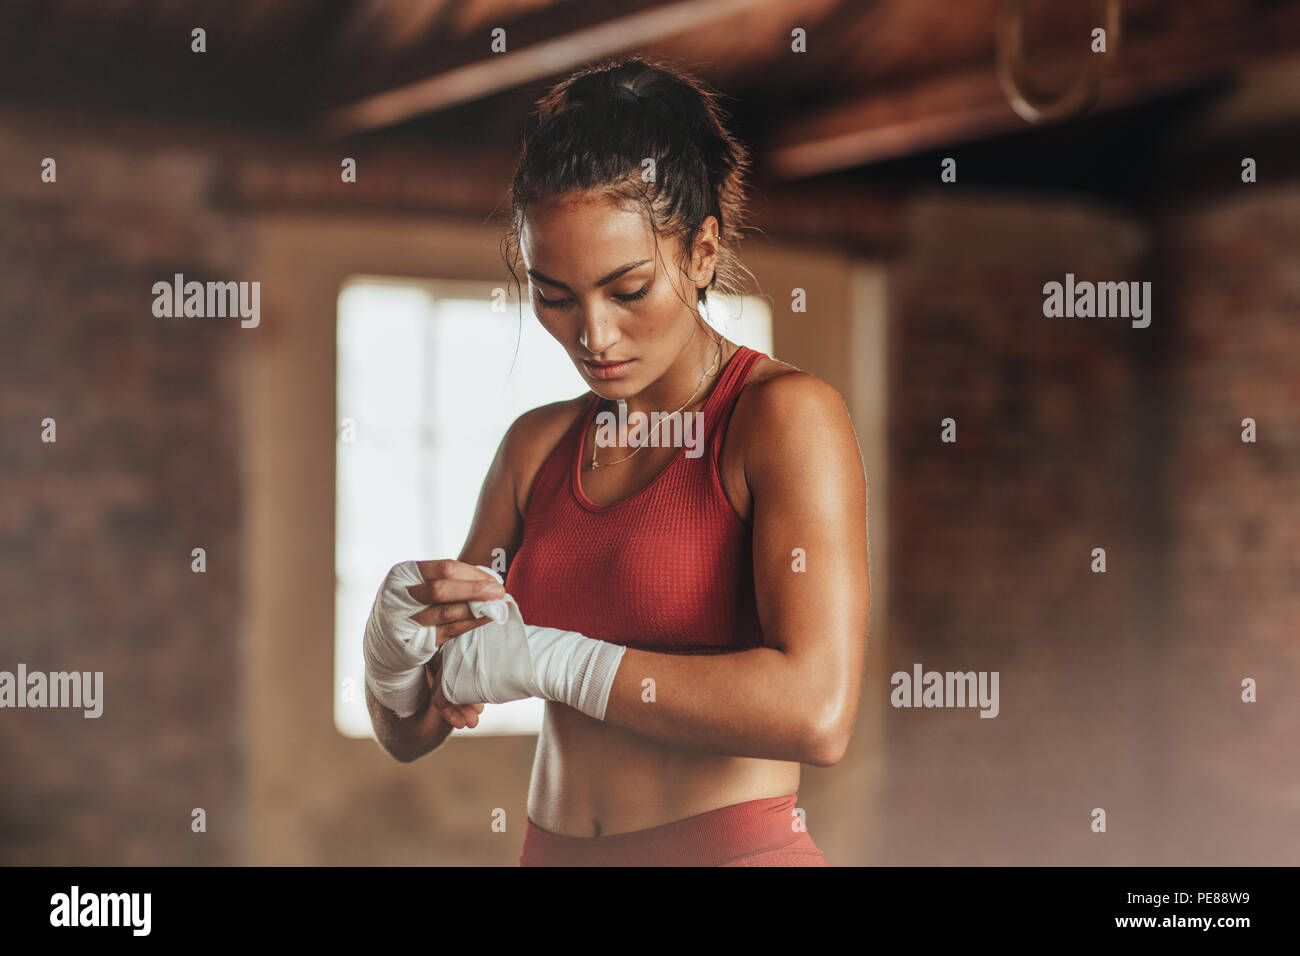 Female Boxer Wearing Strap On Wrist Fitness Young Woman With